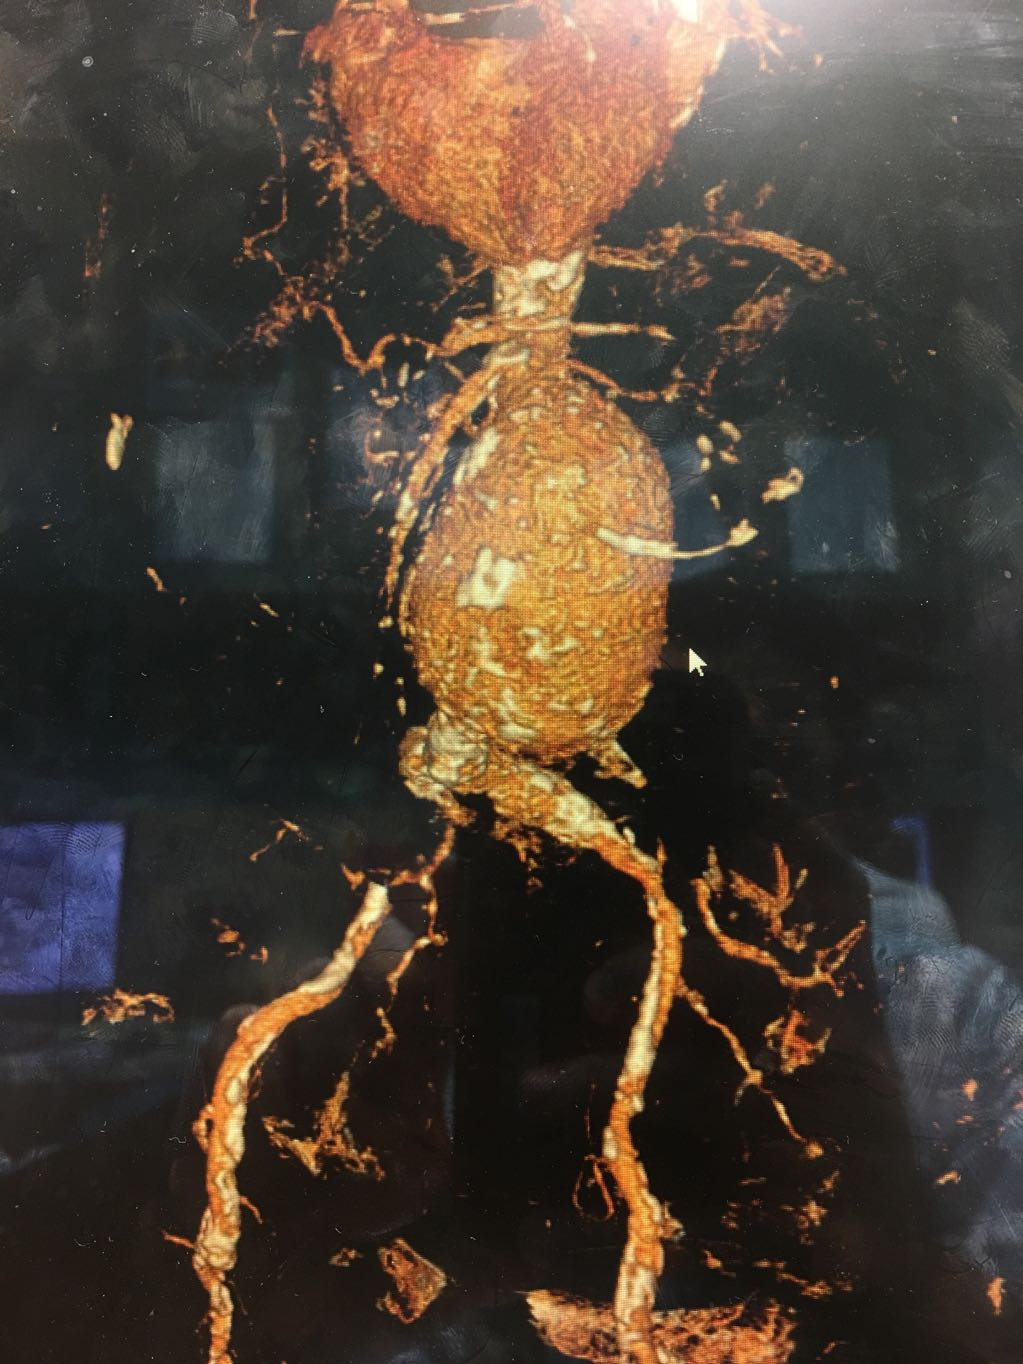 Abdominal aortic aneurysm in angiography